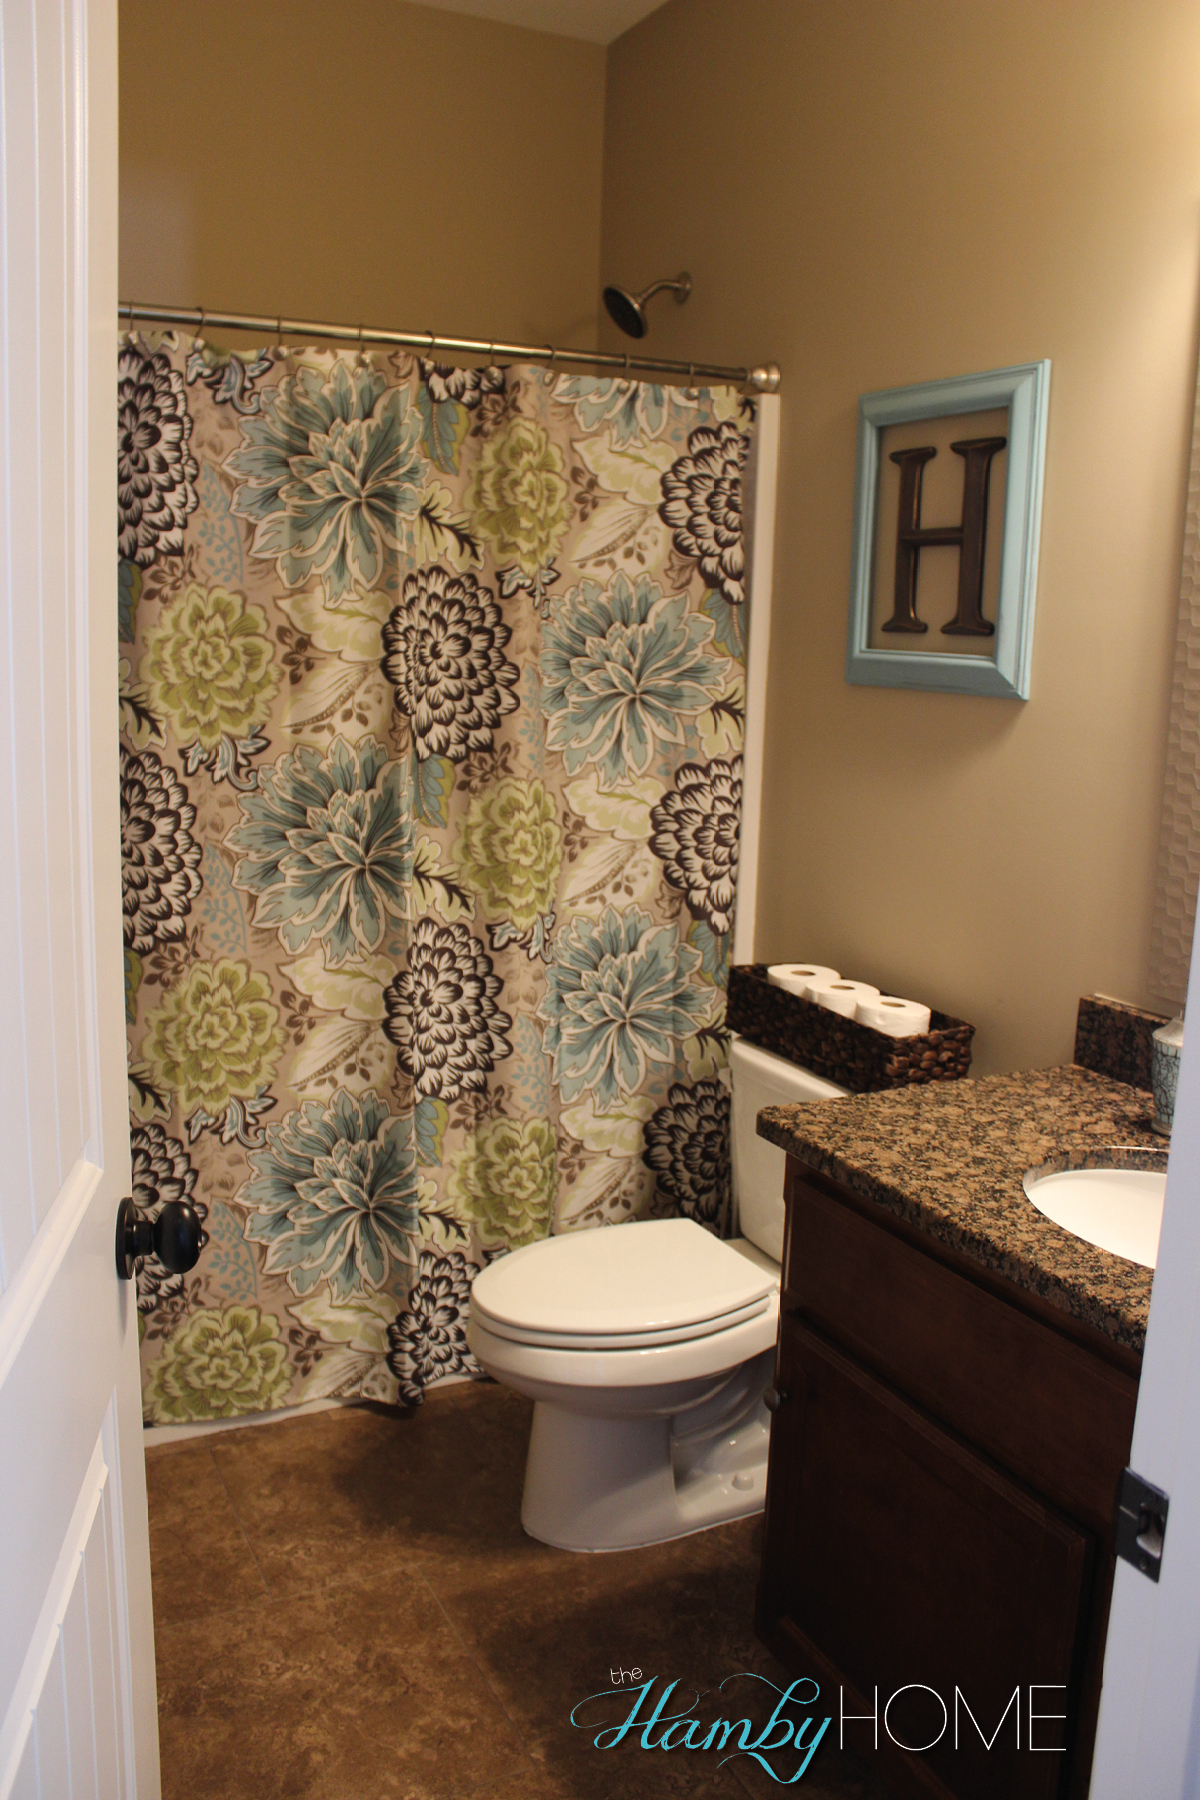 Guest Bathroom The Hamby Home